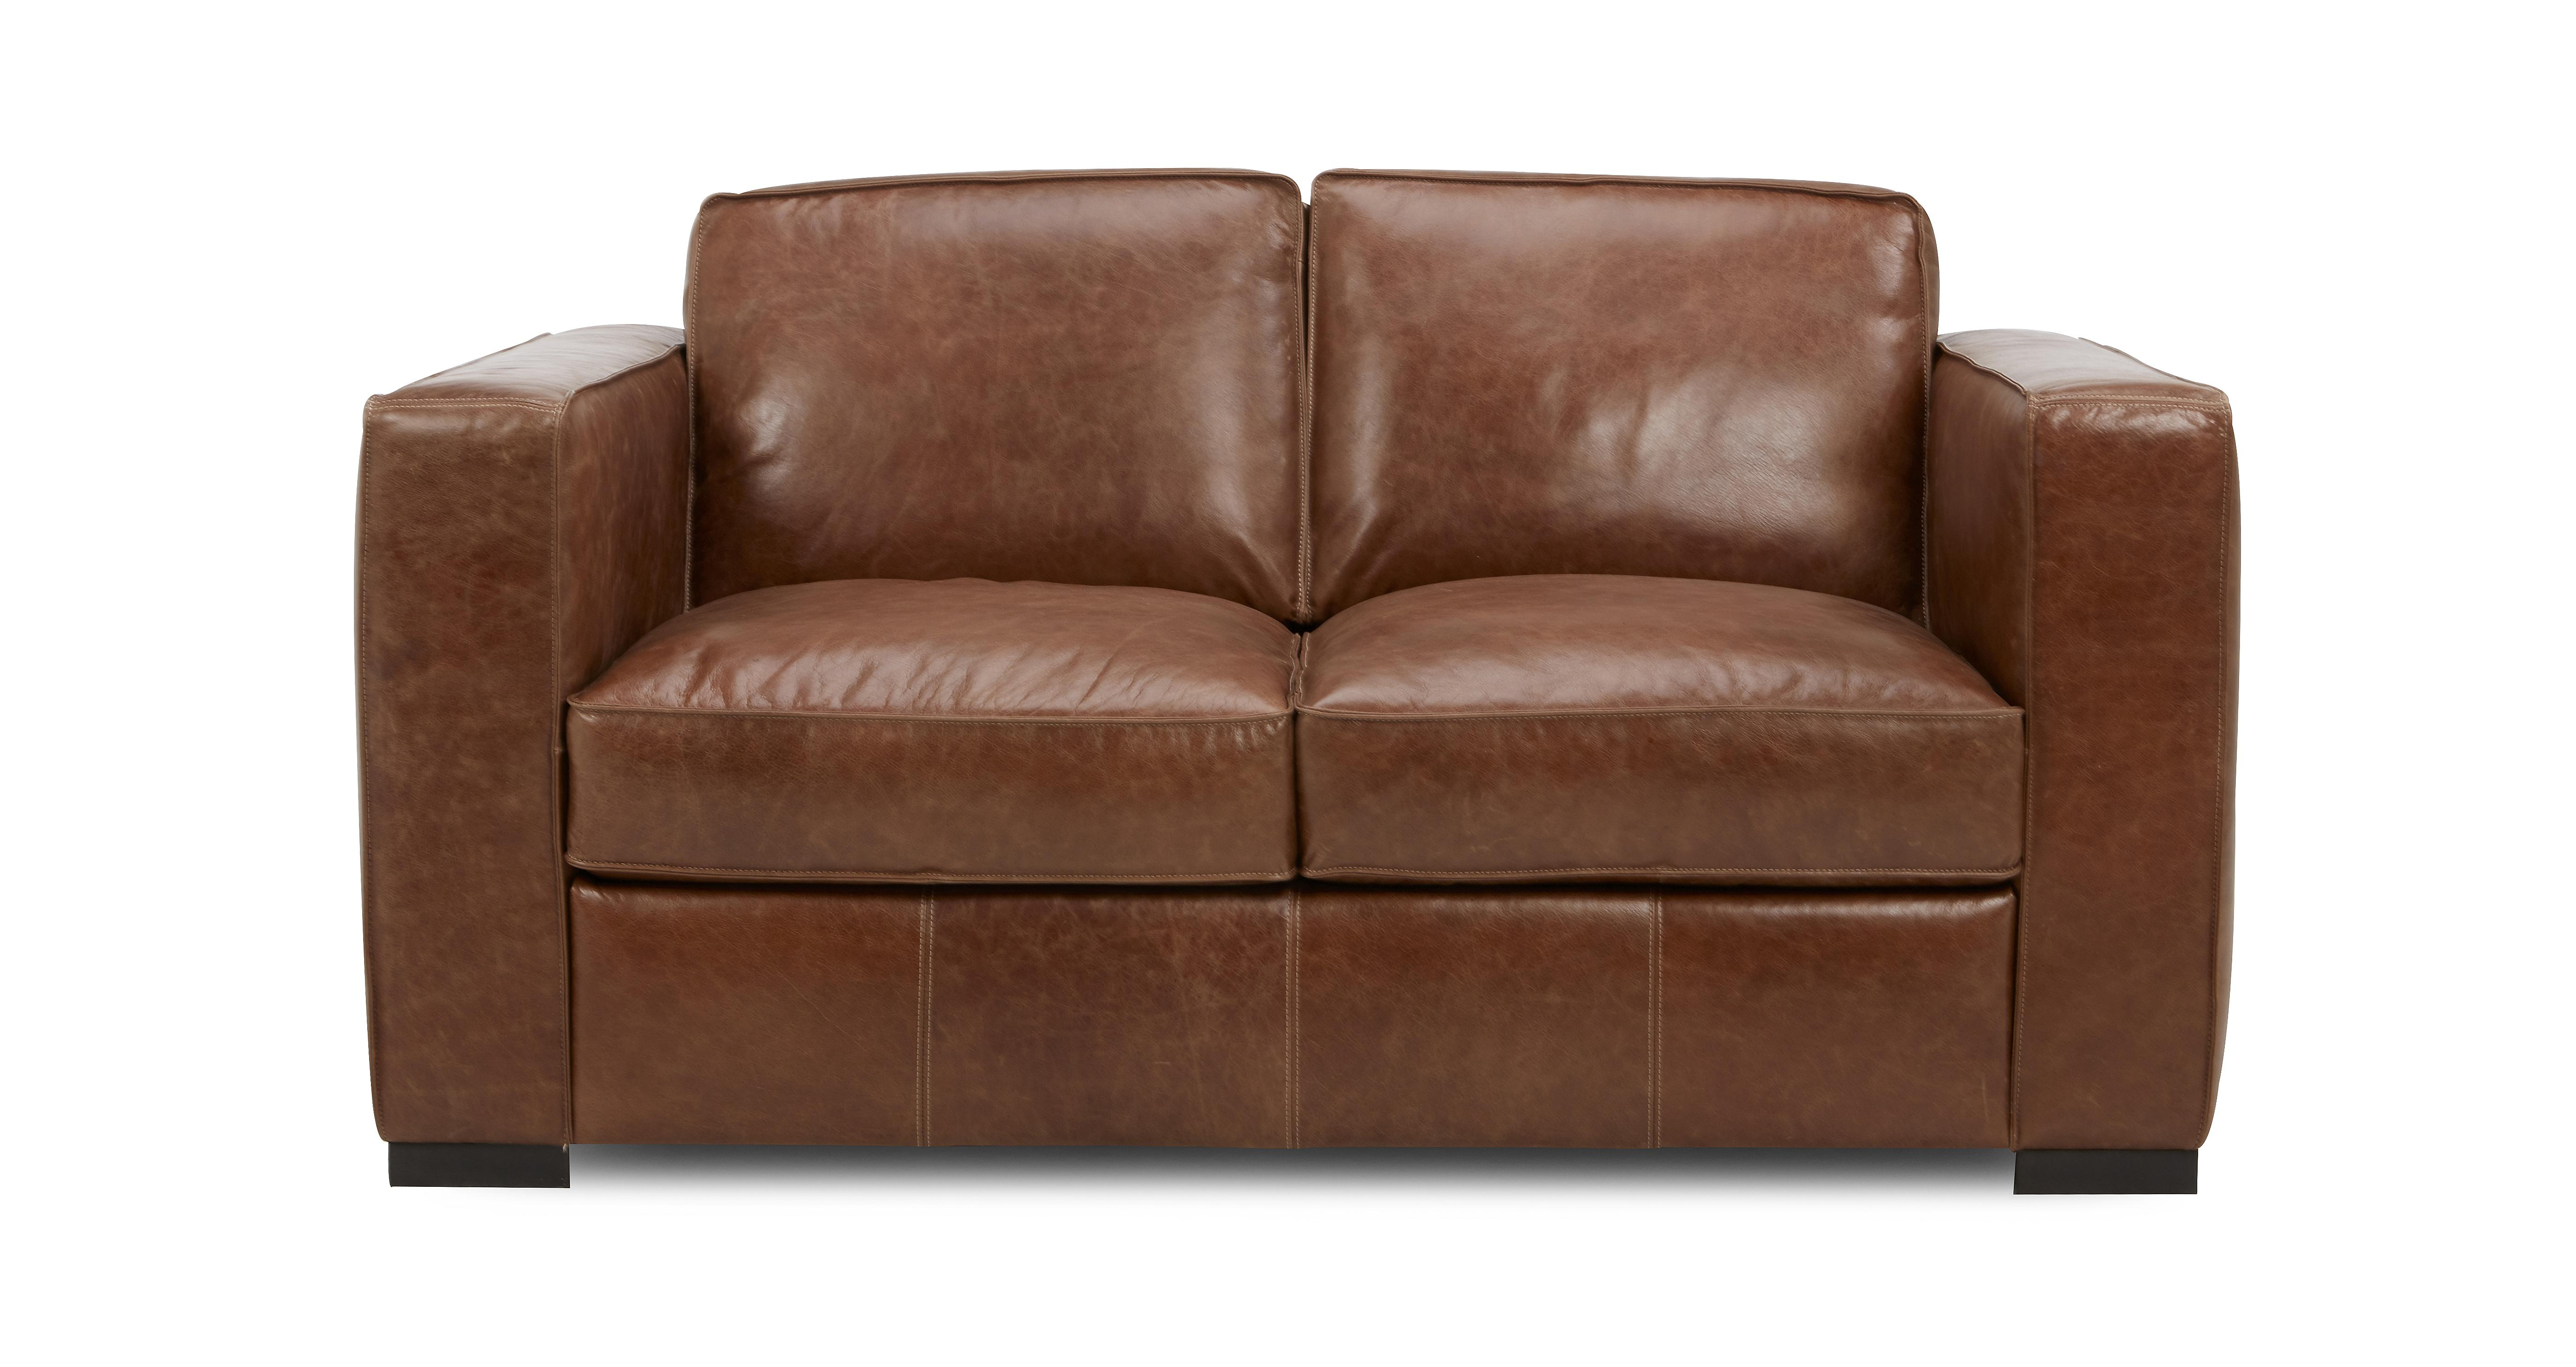 Leather bed chair - Quick View 2 Seater Sofa Fargo Contrast